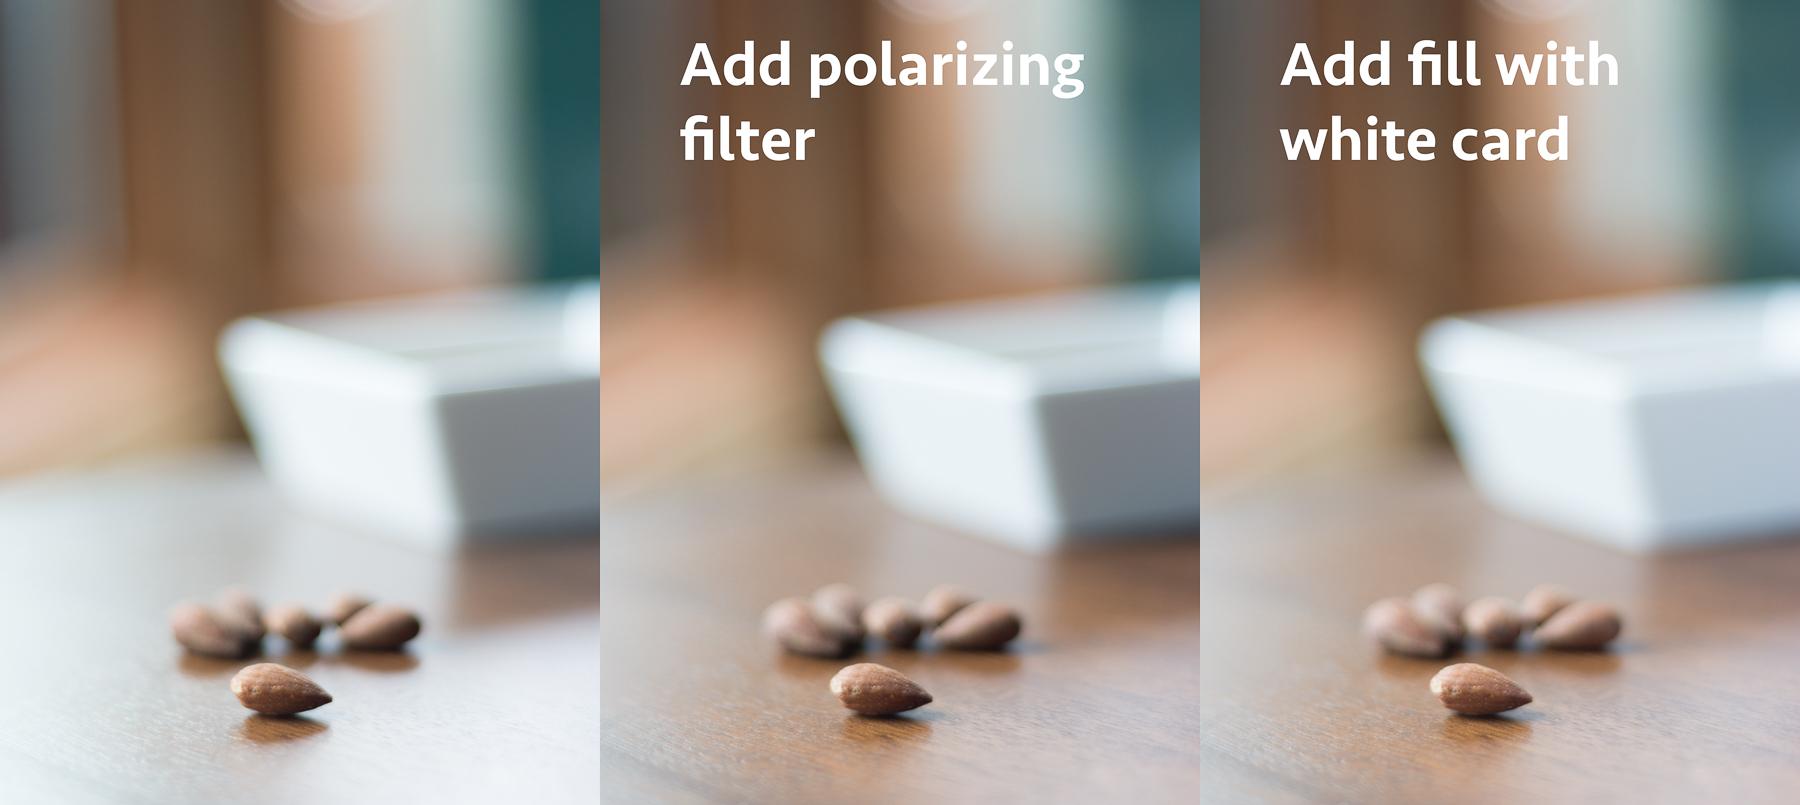 A polarizing filter is added to cut down on the reflection from the smooth table top. In other cases, the filter can help cut down reflections from shiny utensils and glass. Once again, experiment with it.